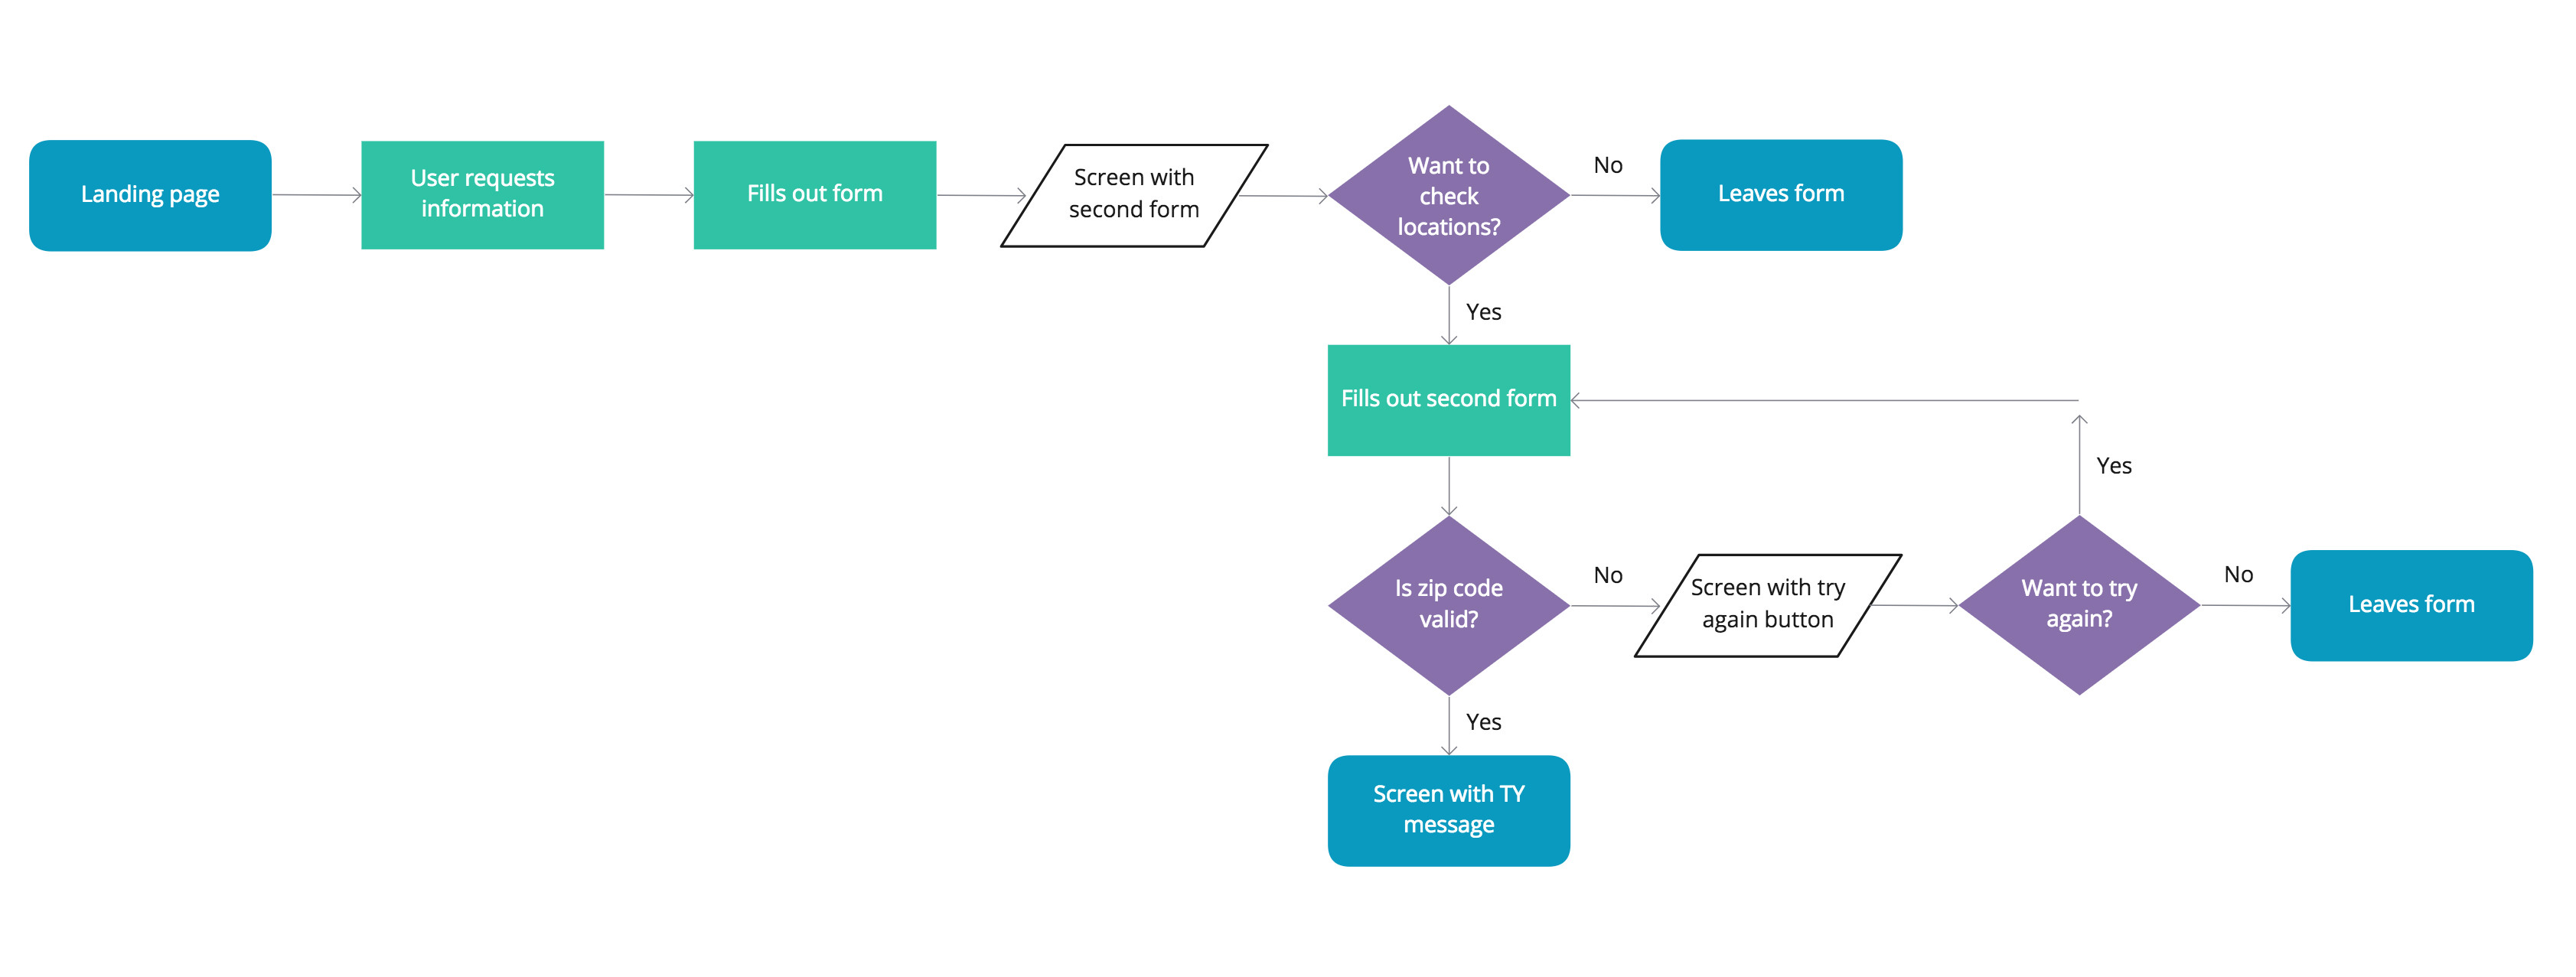 Contact Form Flow Chart